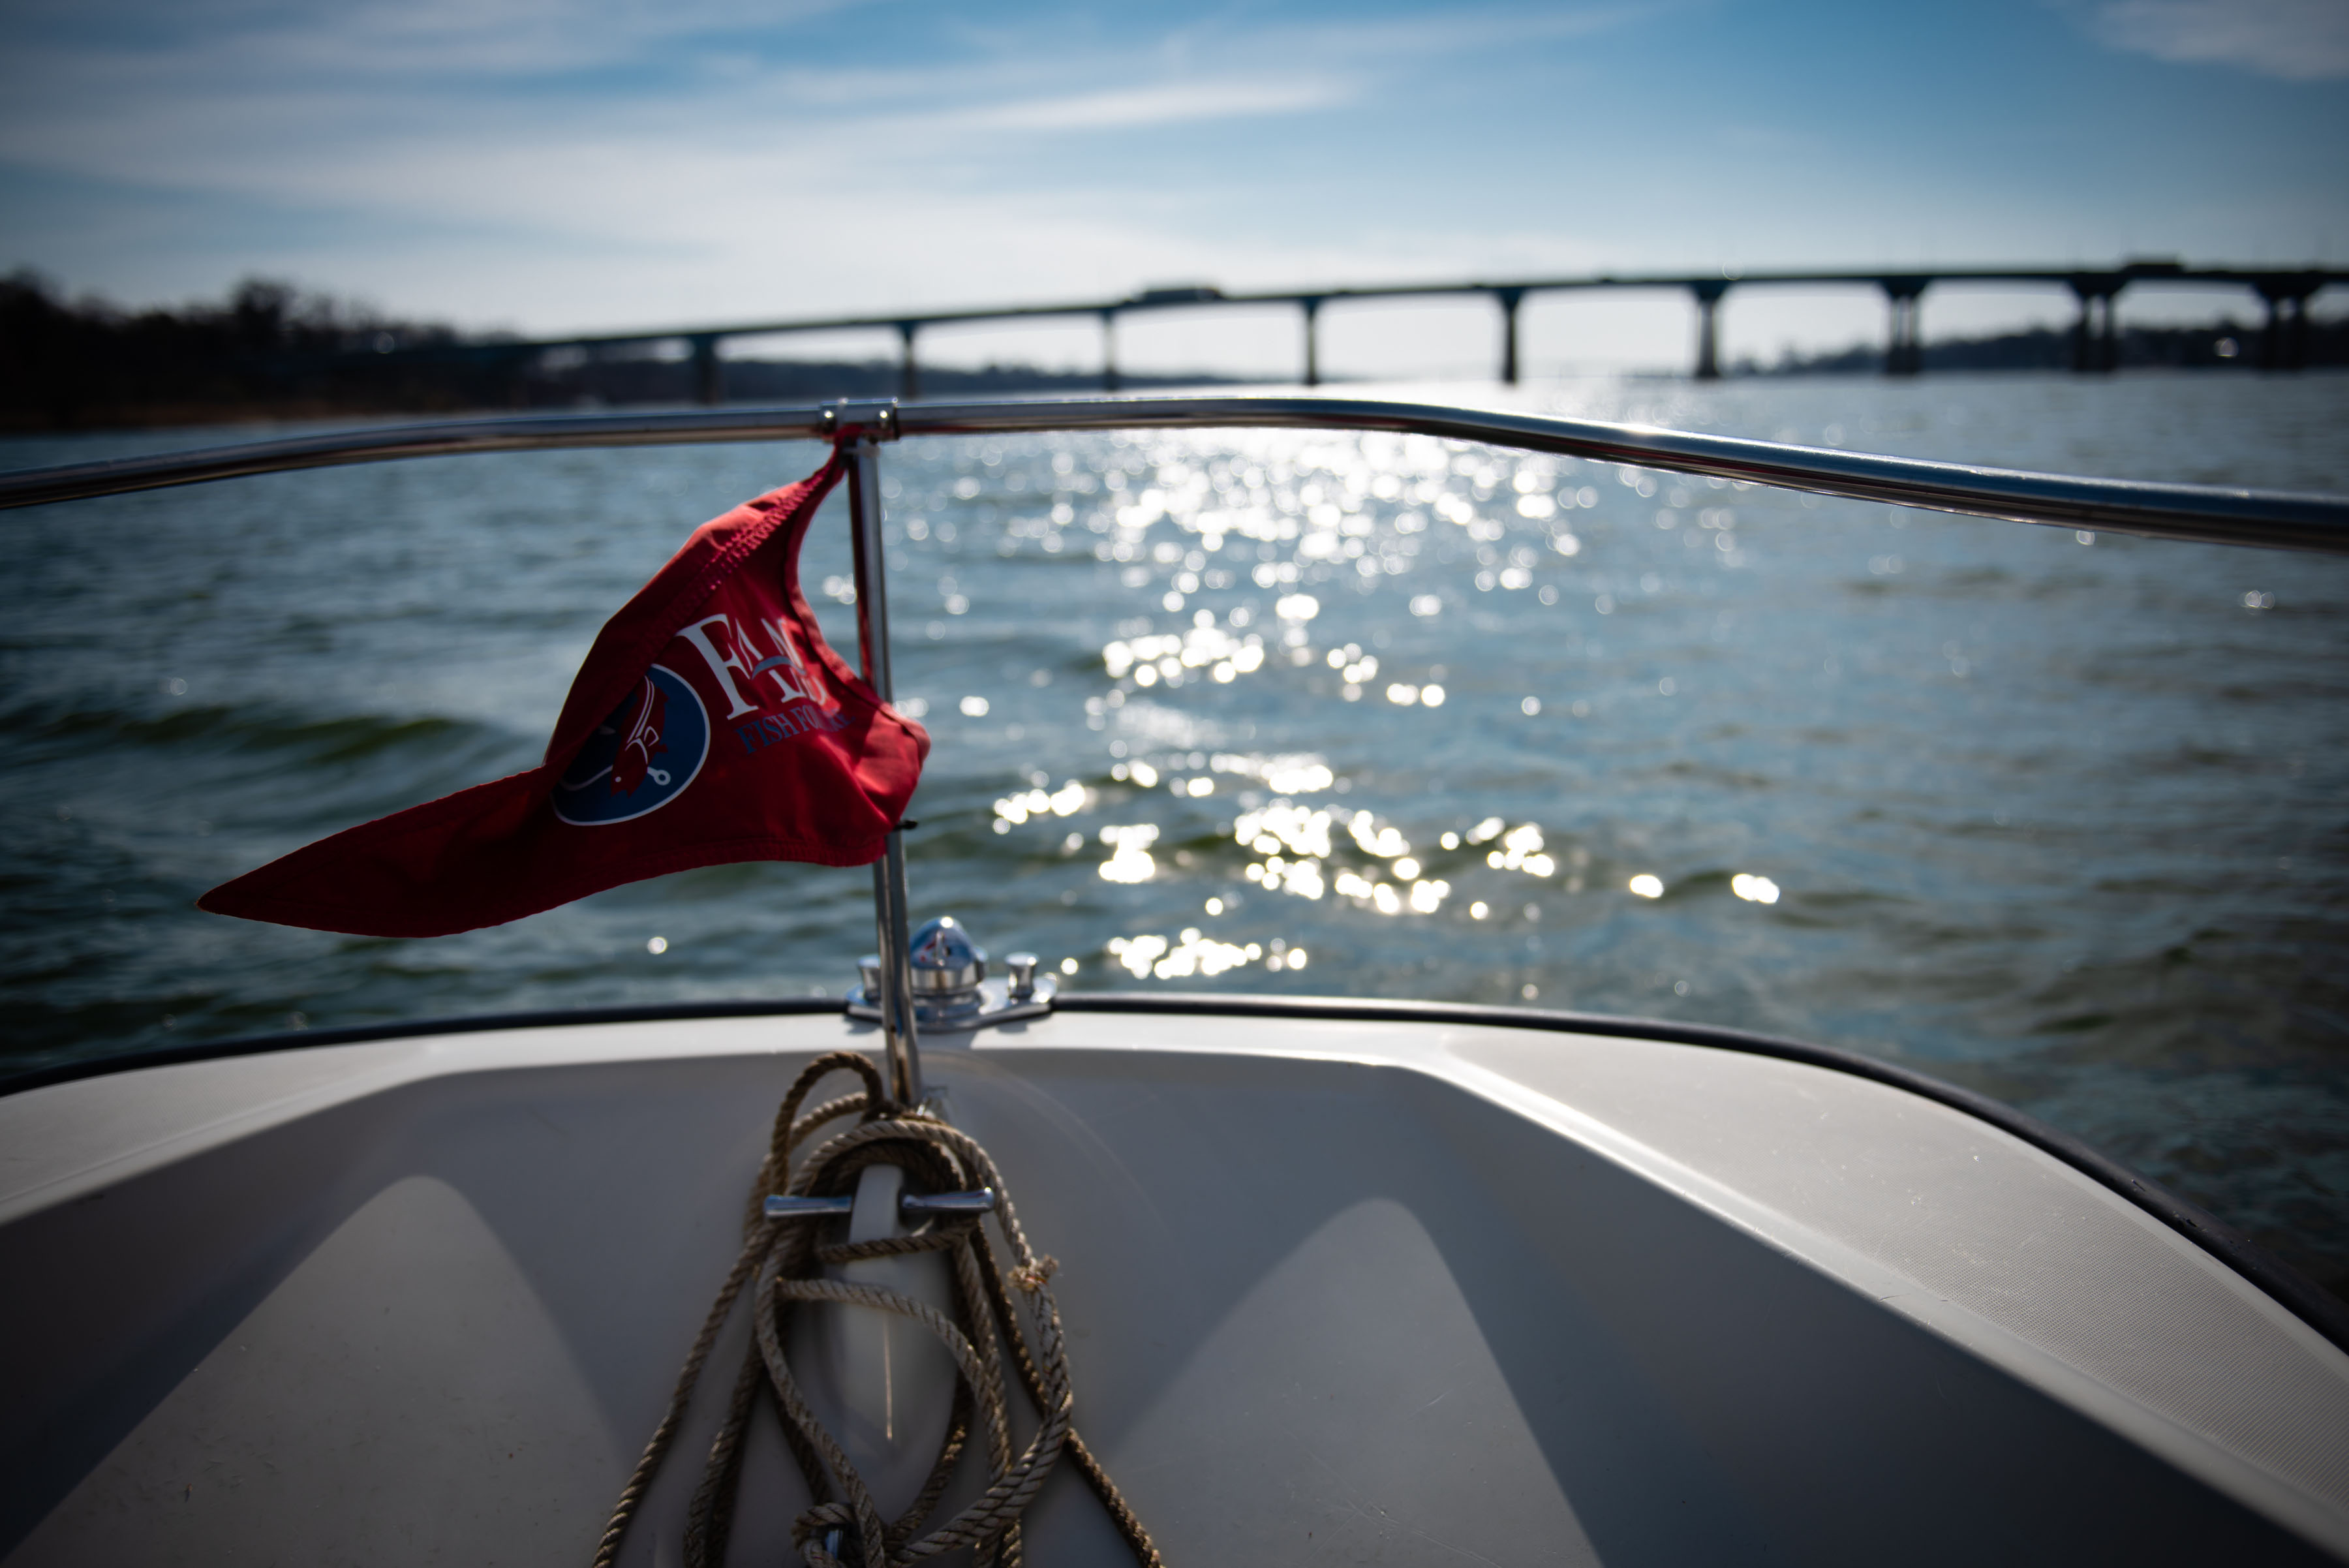 First Light, a boat belonging to the Chesapeake Bay Foundation, heads toward the U.S. 50 bridge on the Severn River in Arnold, Md. MUST CREDIT: Washington Post photos by Sarah L. Voisin